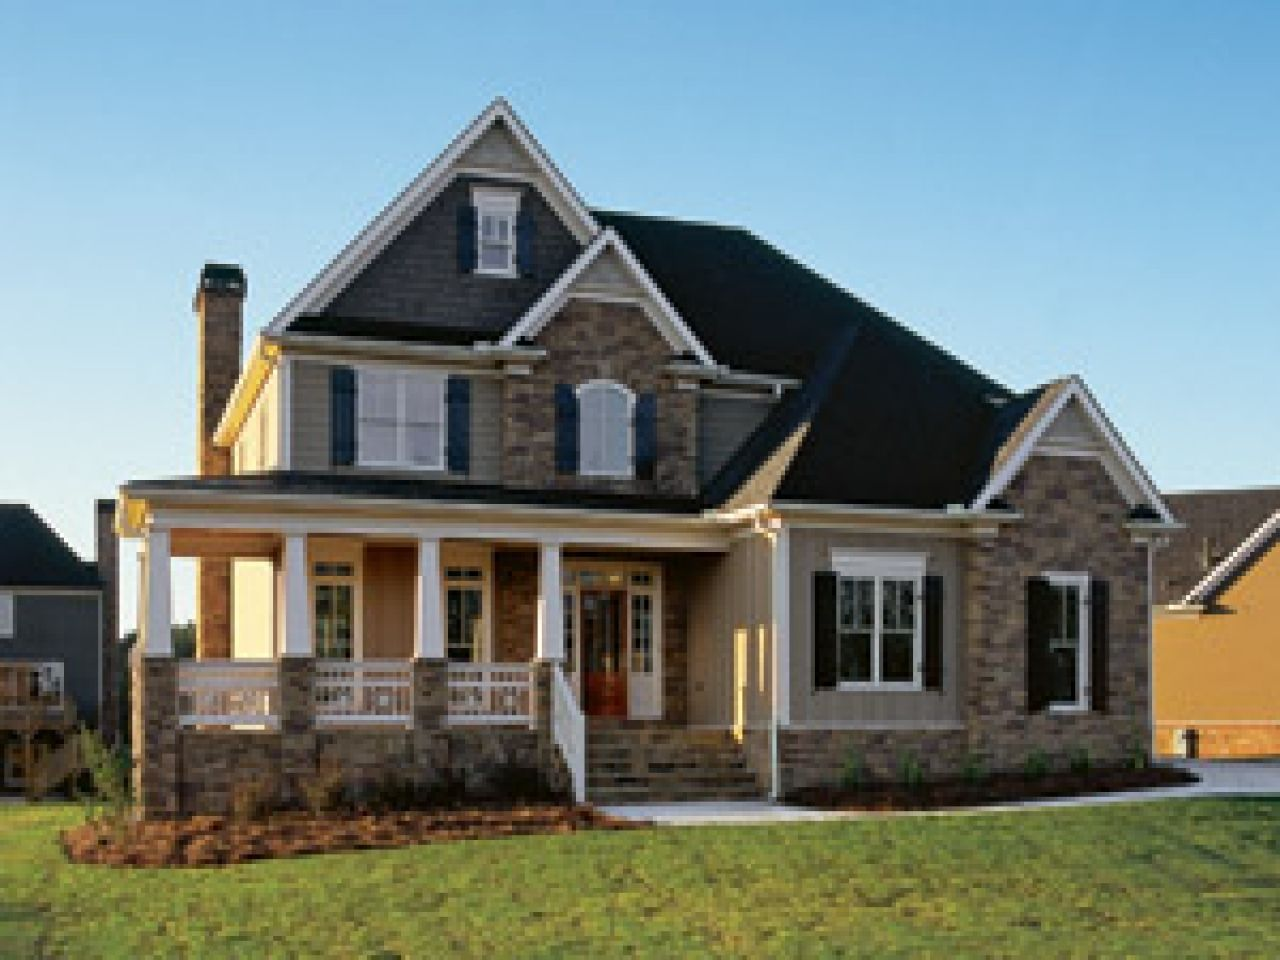 Country House Plans 2 Story Home Simple Small House Floor Home Furnituredesign Craftsman Style House Plans Country House Plans Country House Plan